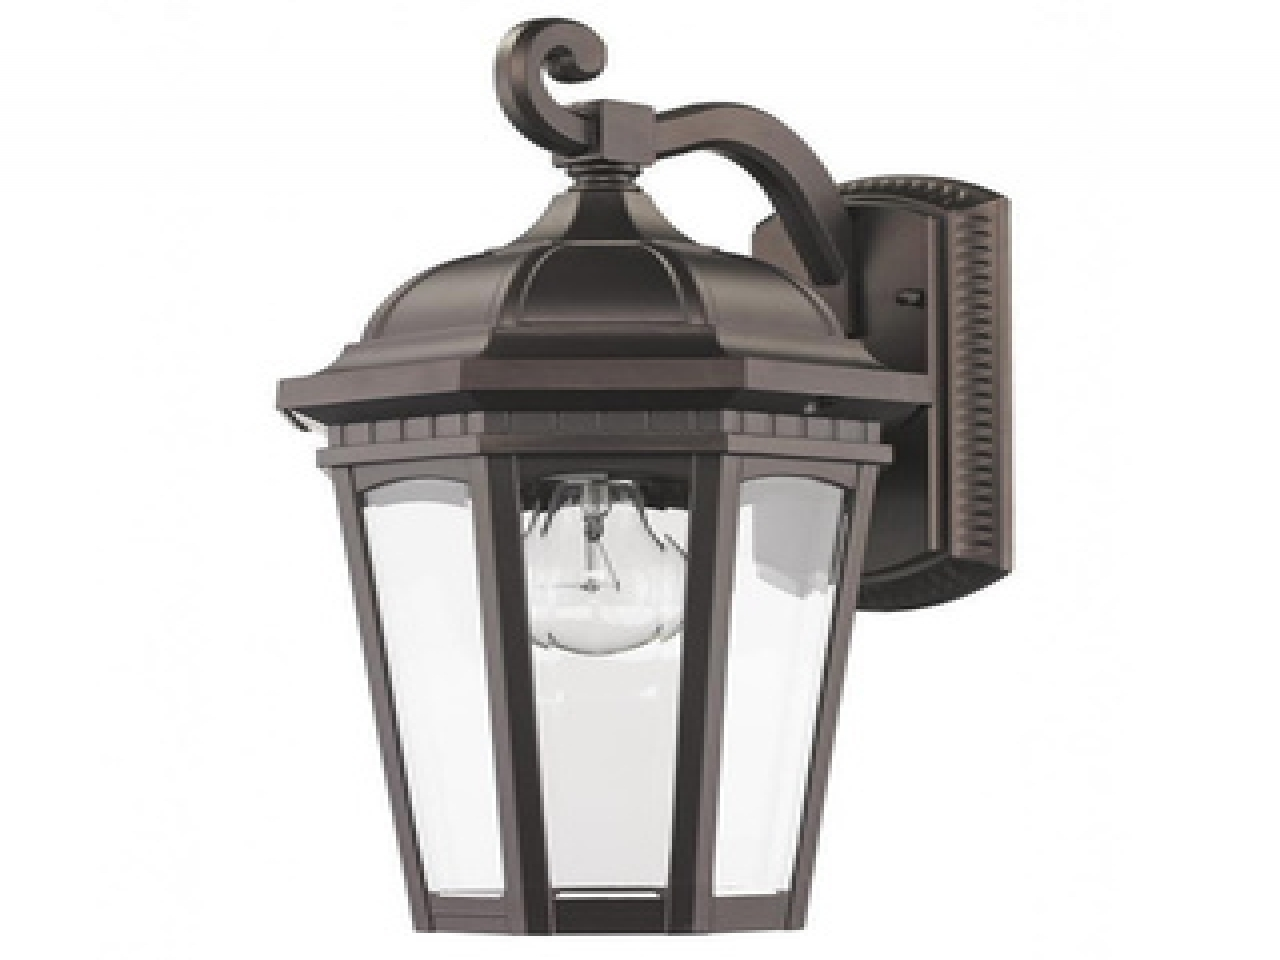 Latest Outdoor Wall Mounted Decorative Lighting Within Light : Lantern Outdoor Wall Mount Lights Simple White Decoration (View 6 of 20)